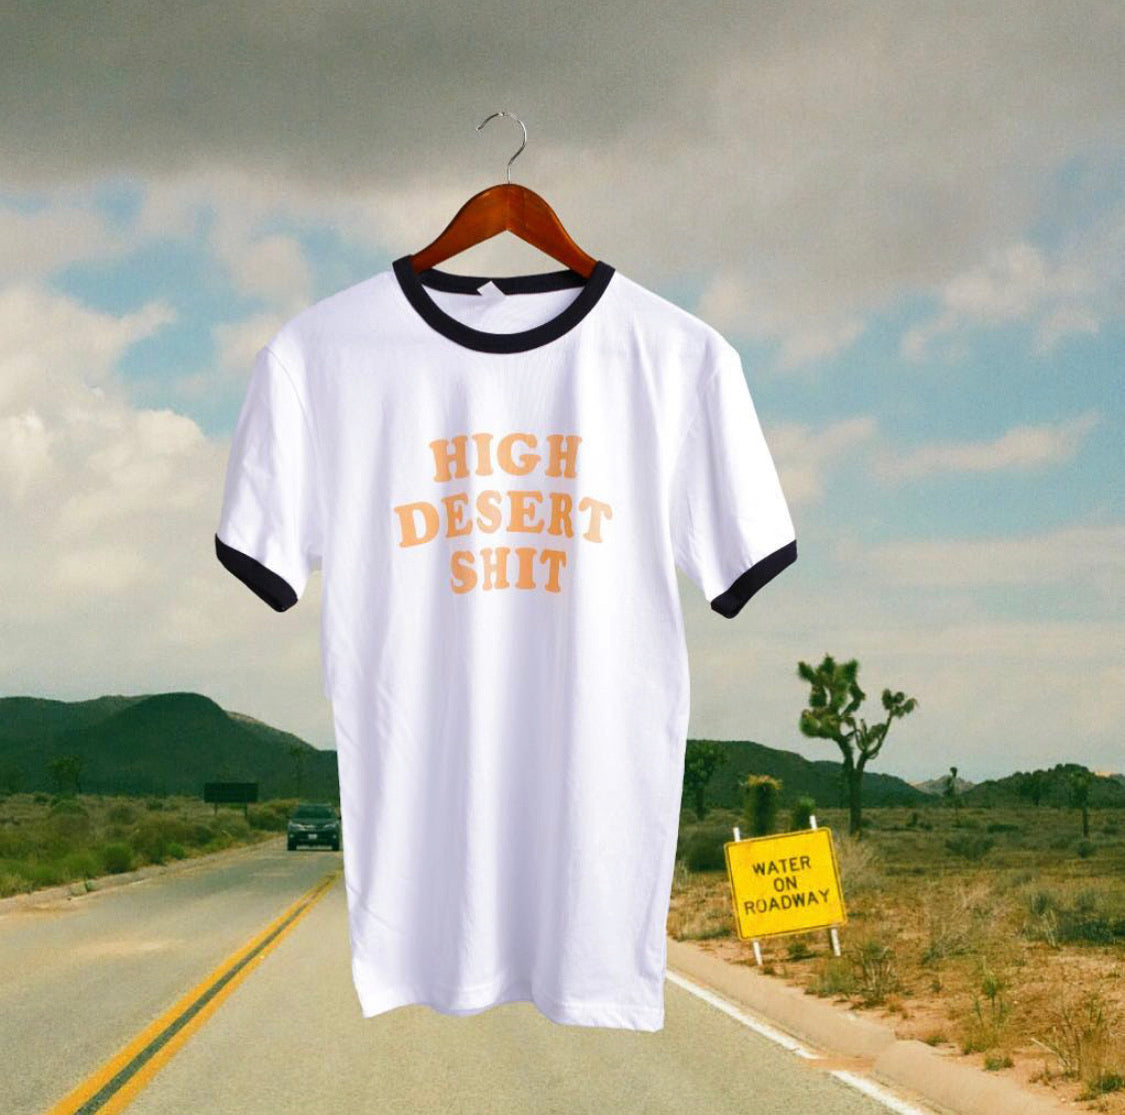 HIGH DESERT SHIT Tee